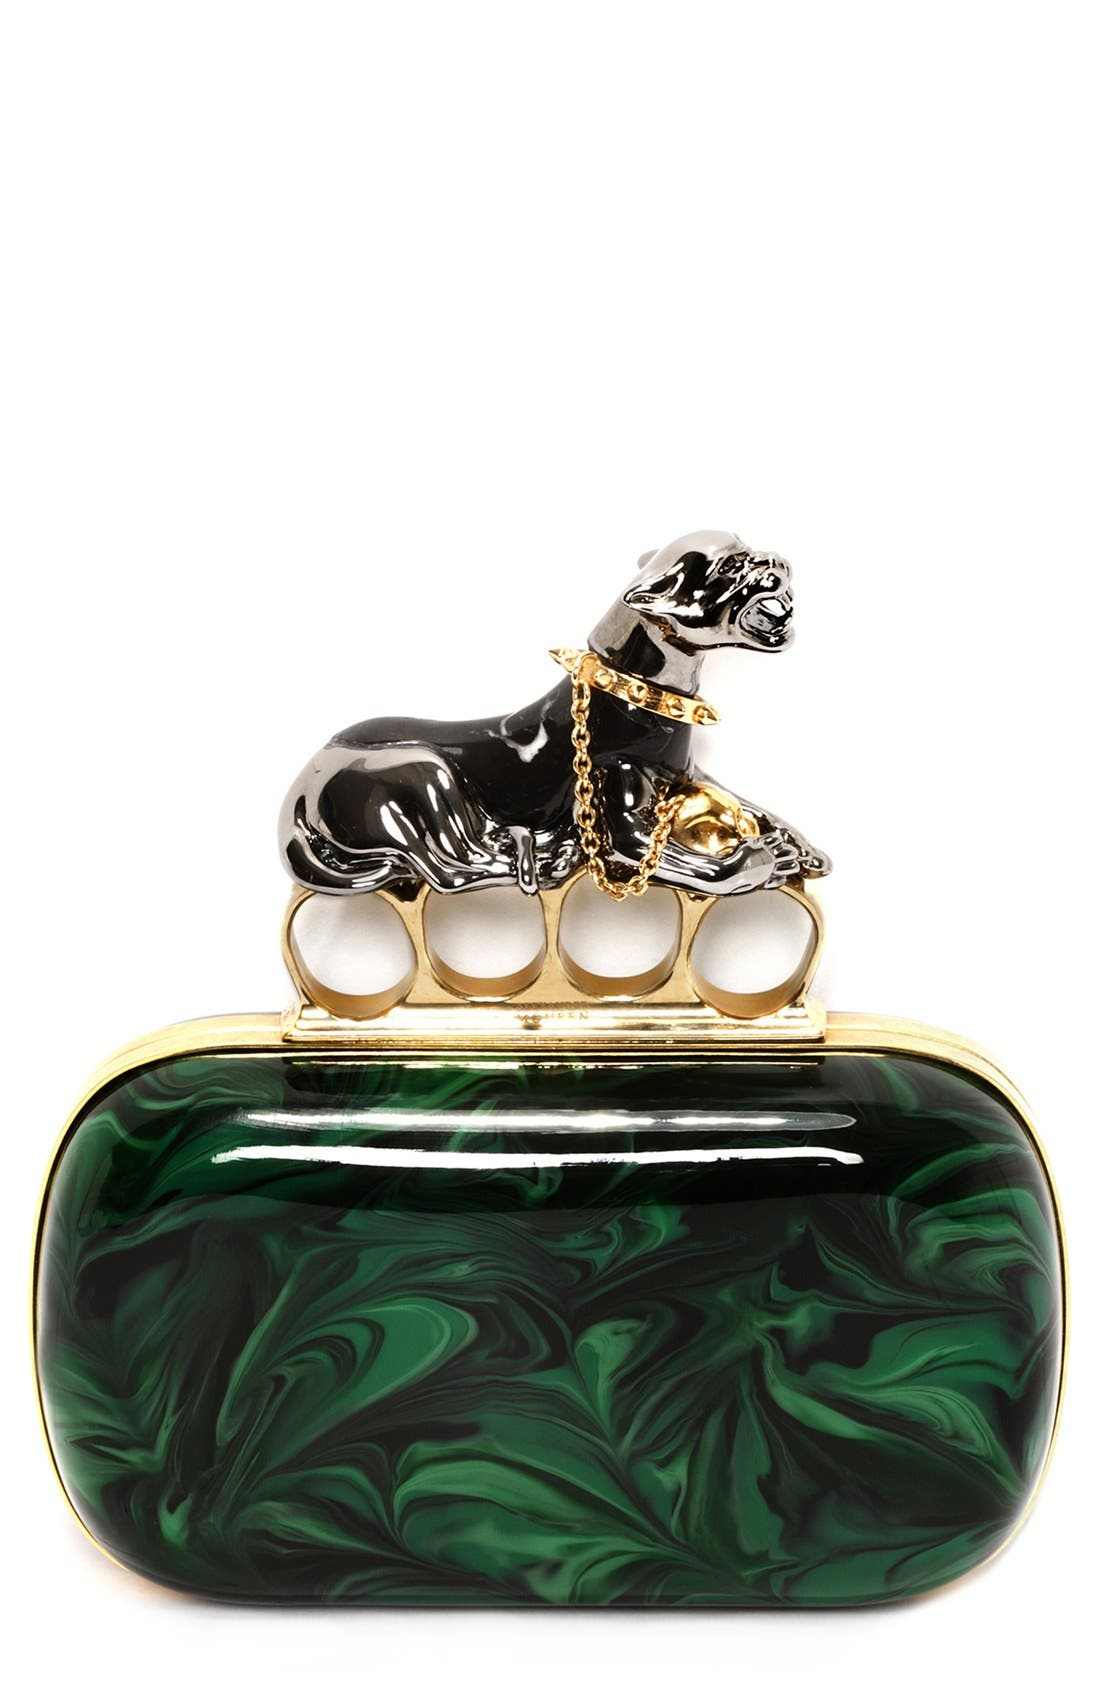 Main Image - Alexander McQueen Panther Knuckle Clutch